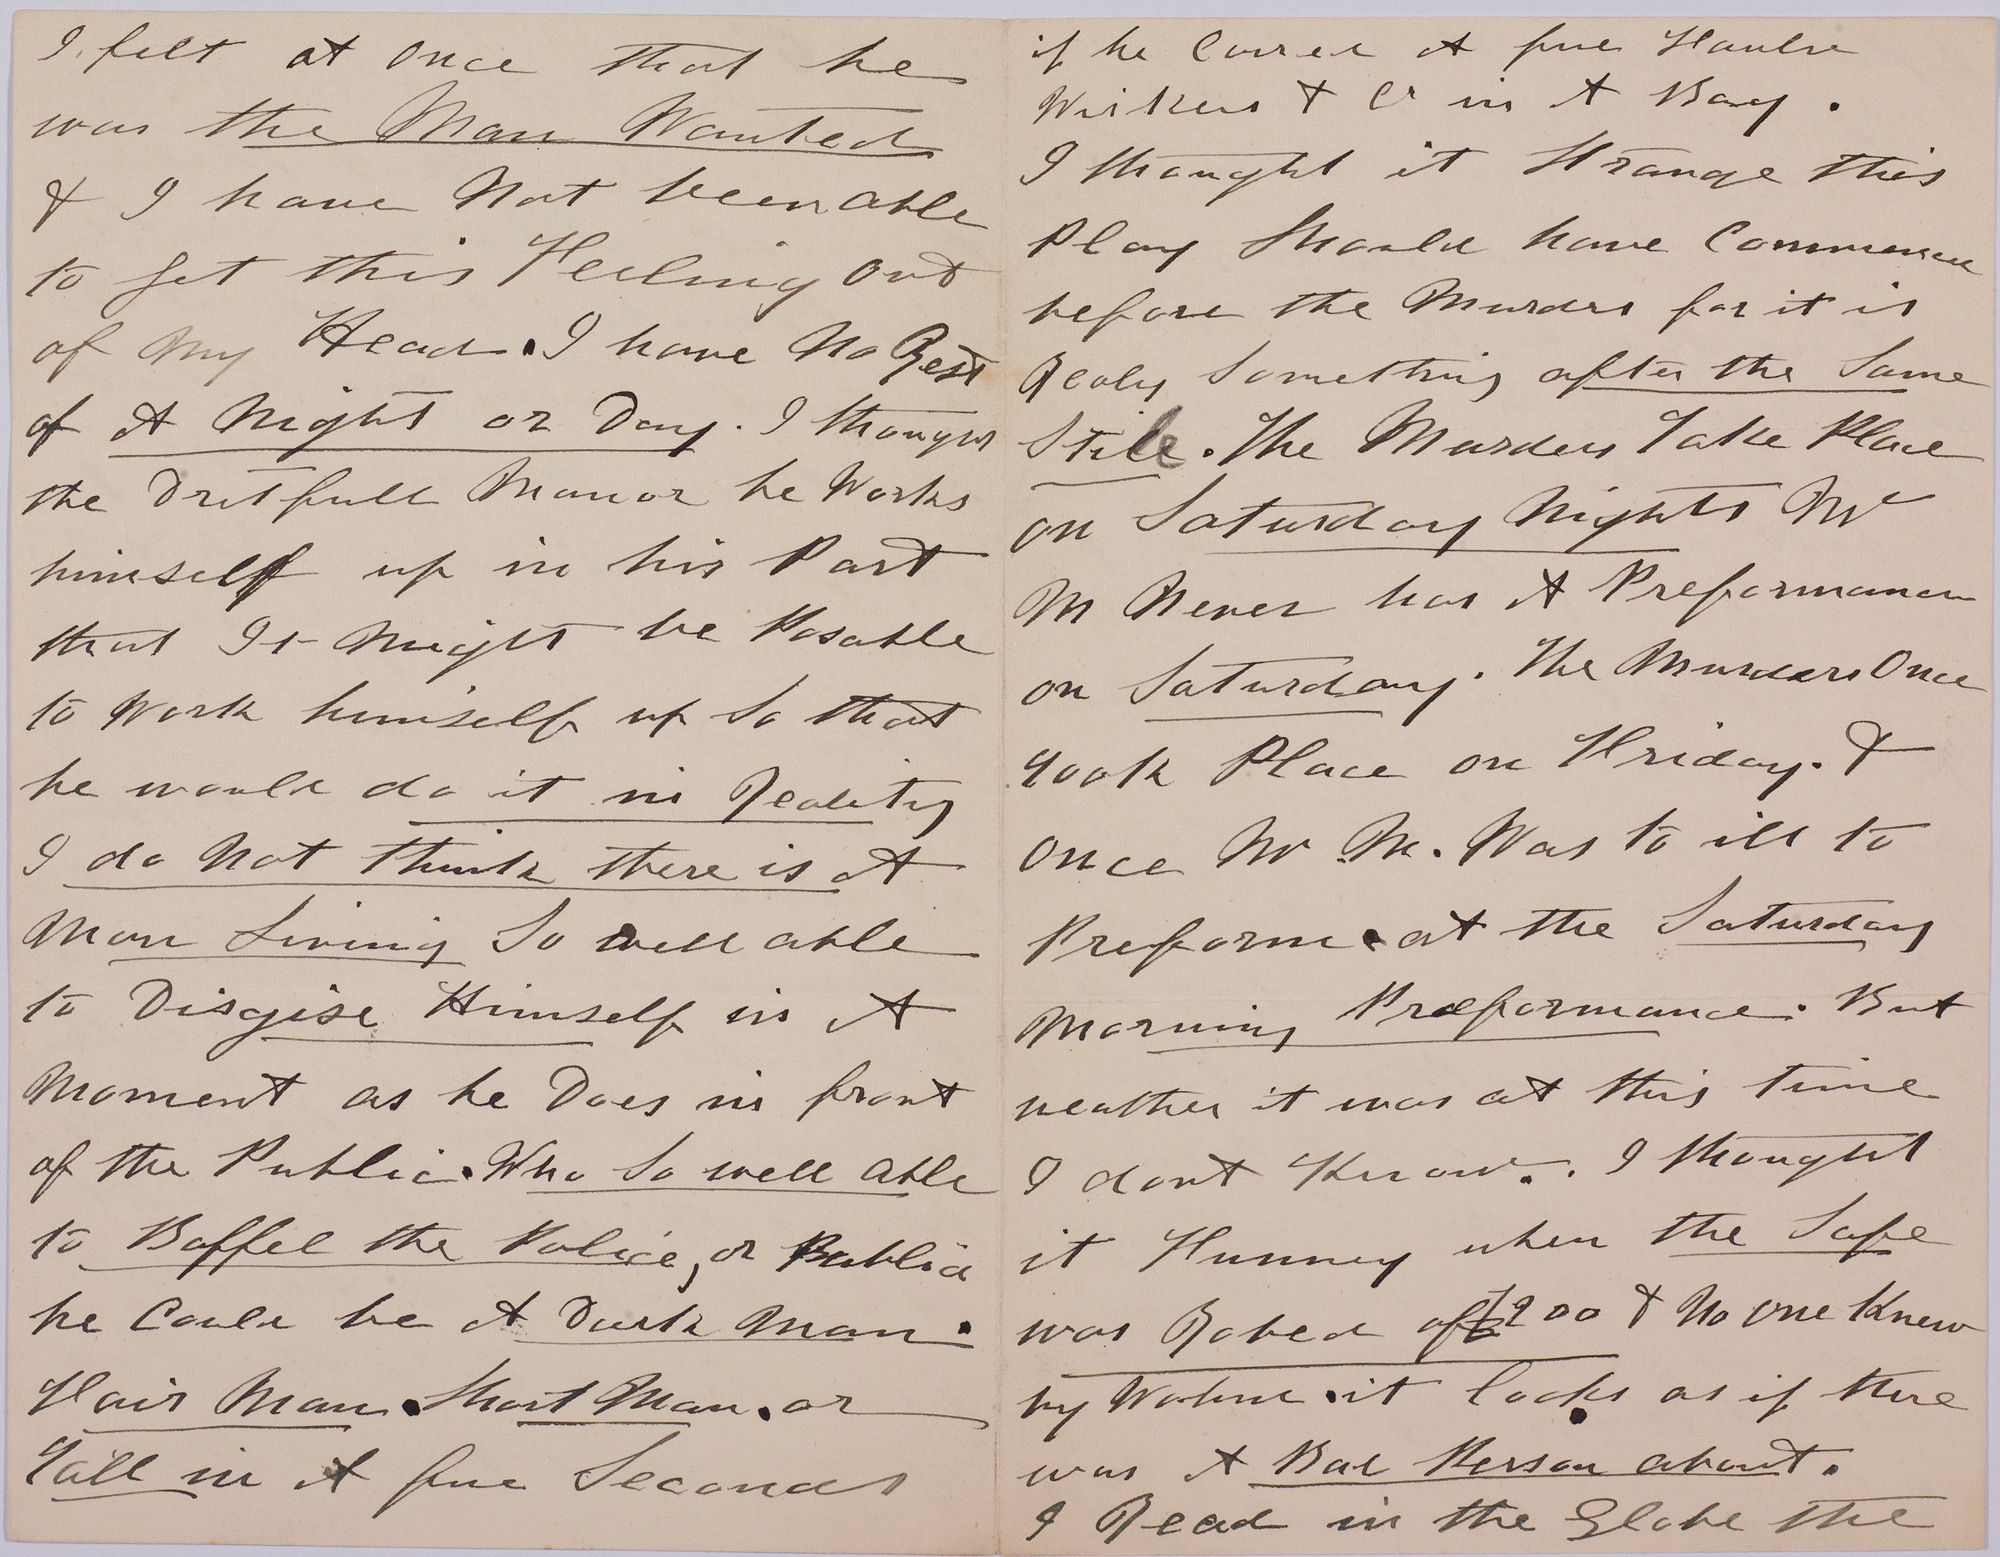 On 5 October 1888 this letter was sent anonymously to the